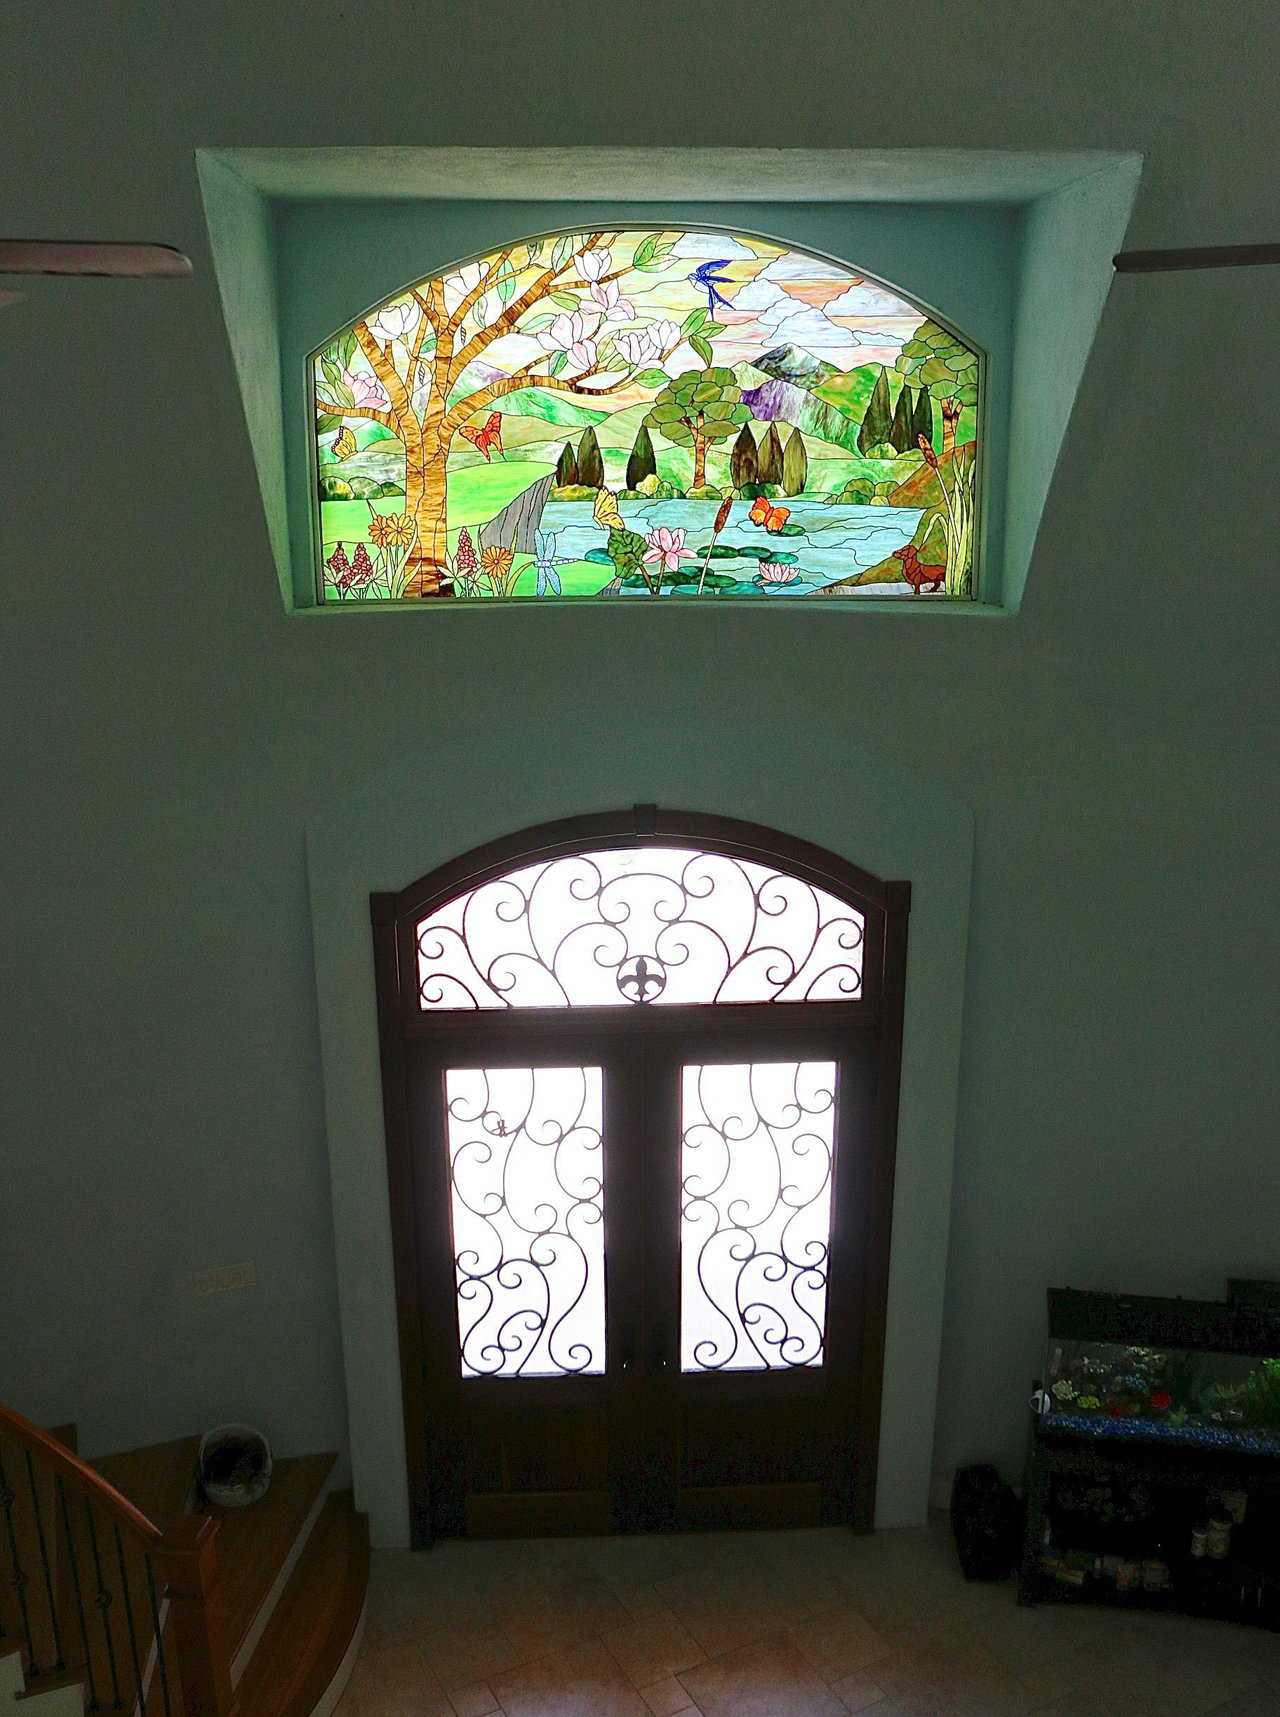 The Stained Glass Window Above The Front Door Of The Monolithic Dome Home  Can Be Seen